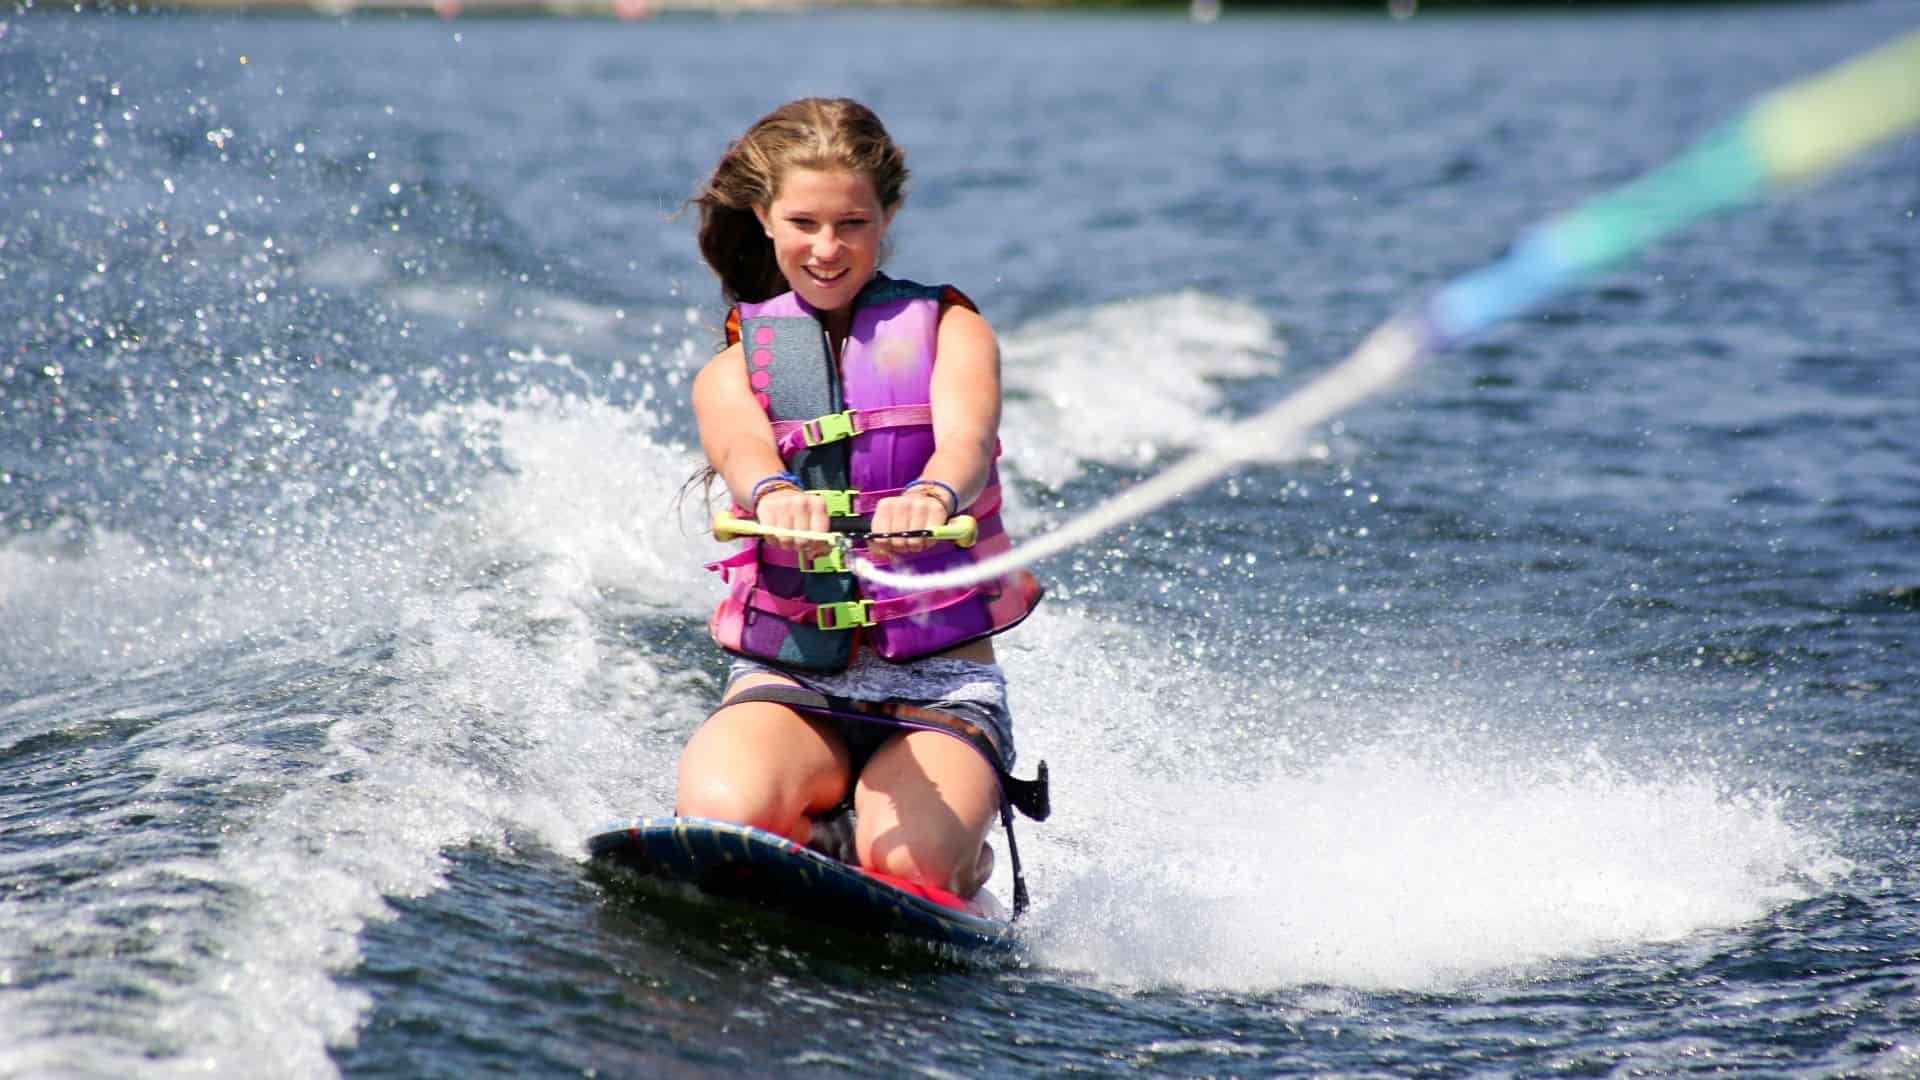 best kneeboard for beginners